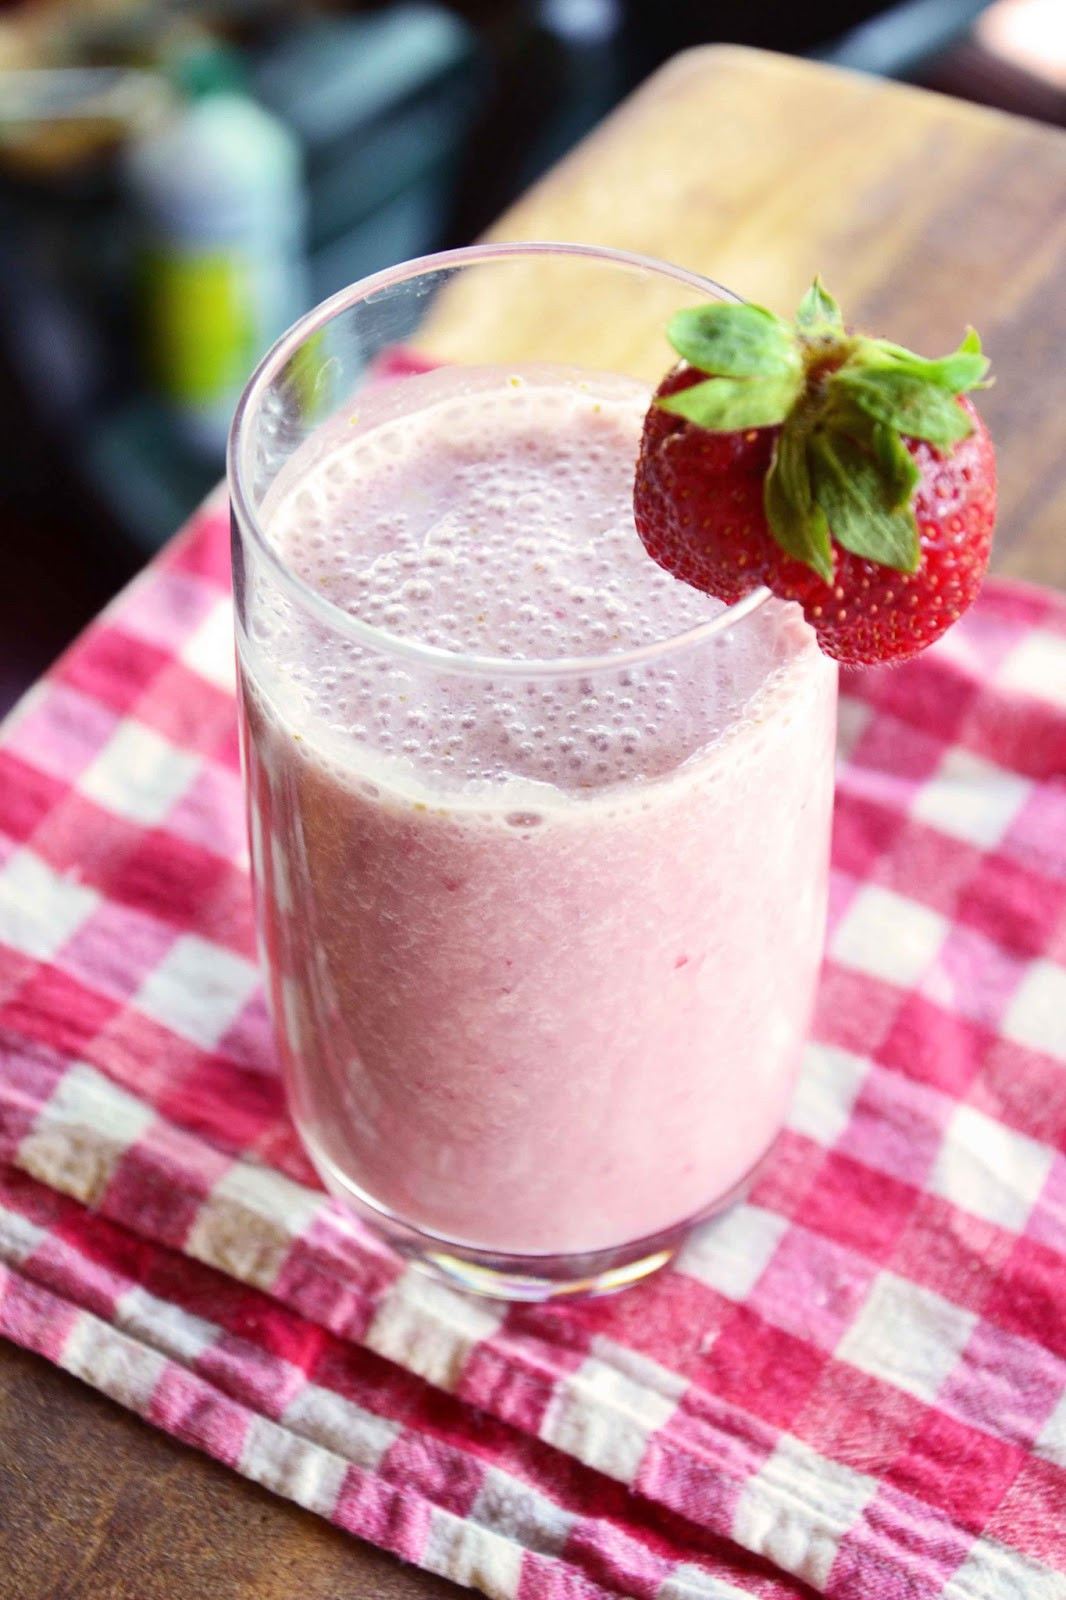 Strawberry Banana Protein Smoothies  The eccentric Cook Strawberry Banana Protein Shake